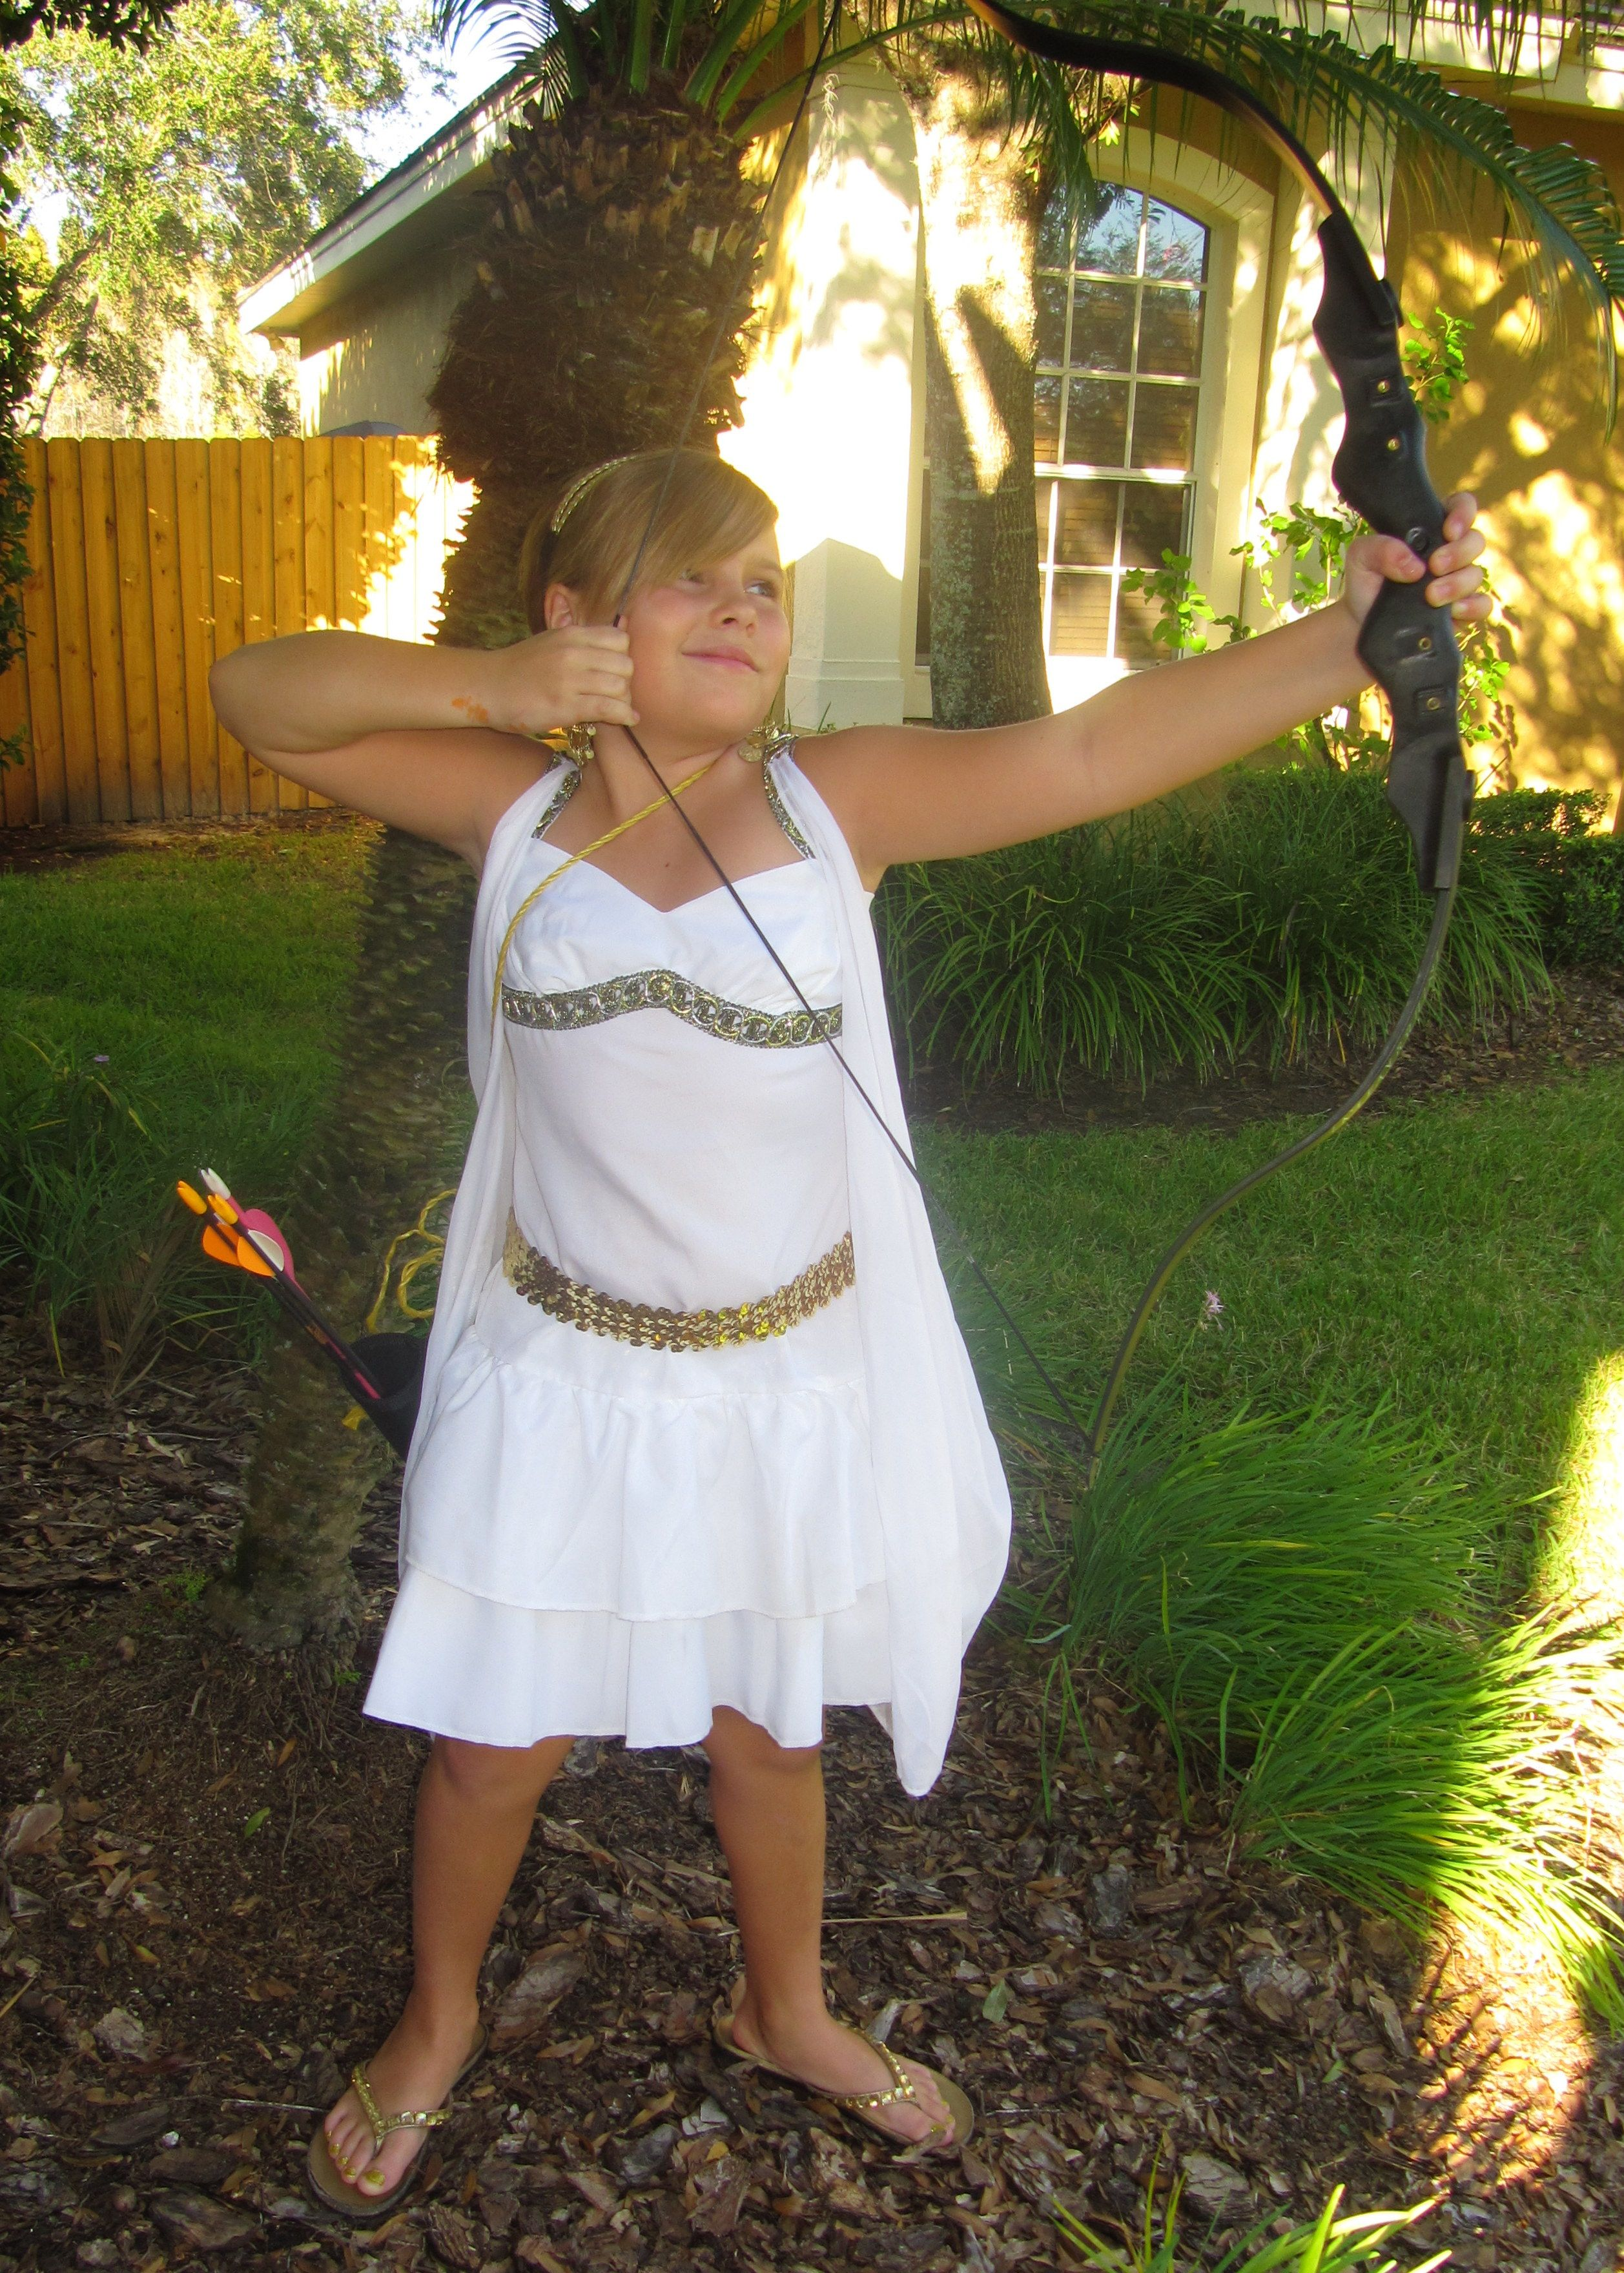 2012. Artemis Costume. Got basic outfit from goodwill and ...